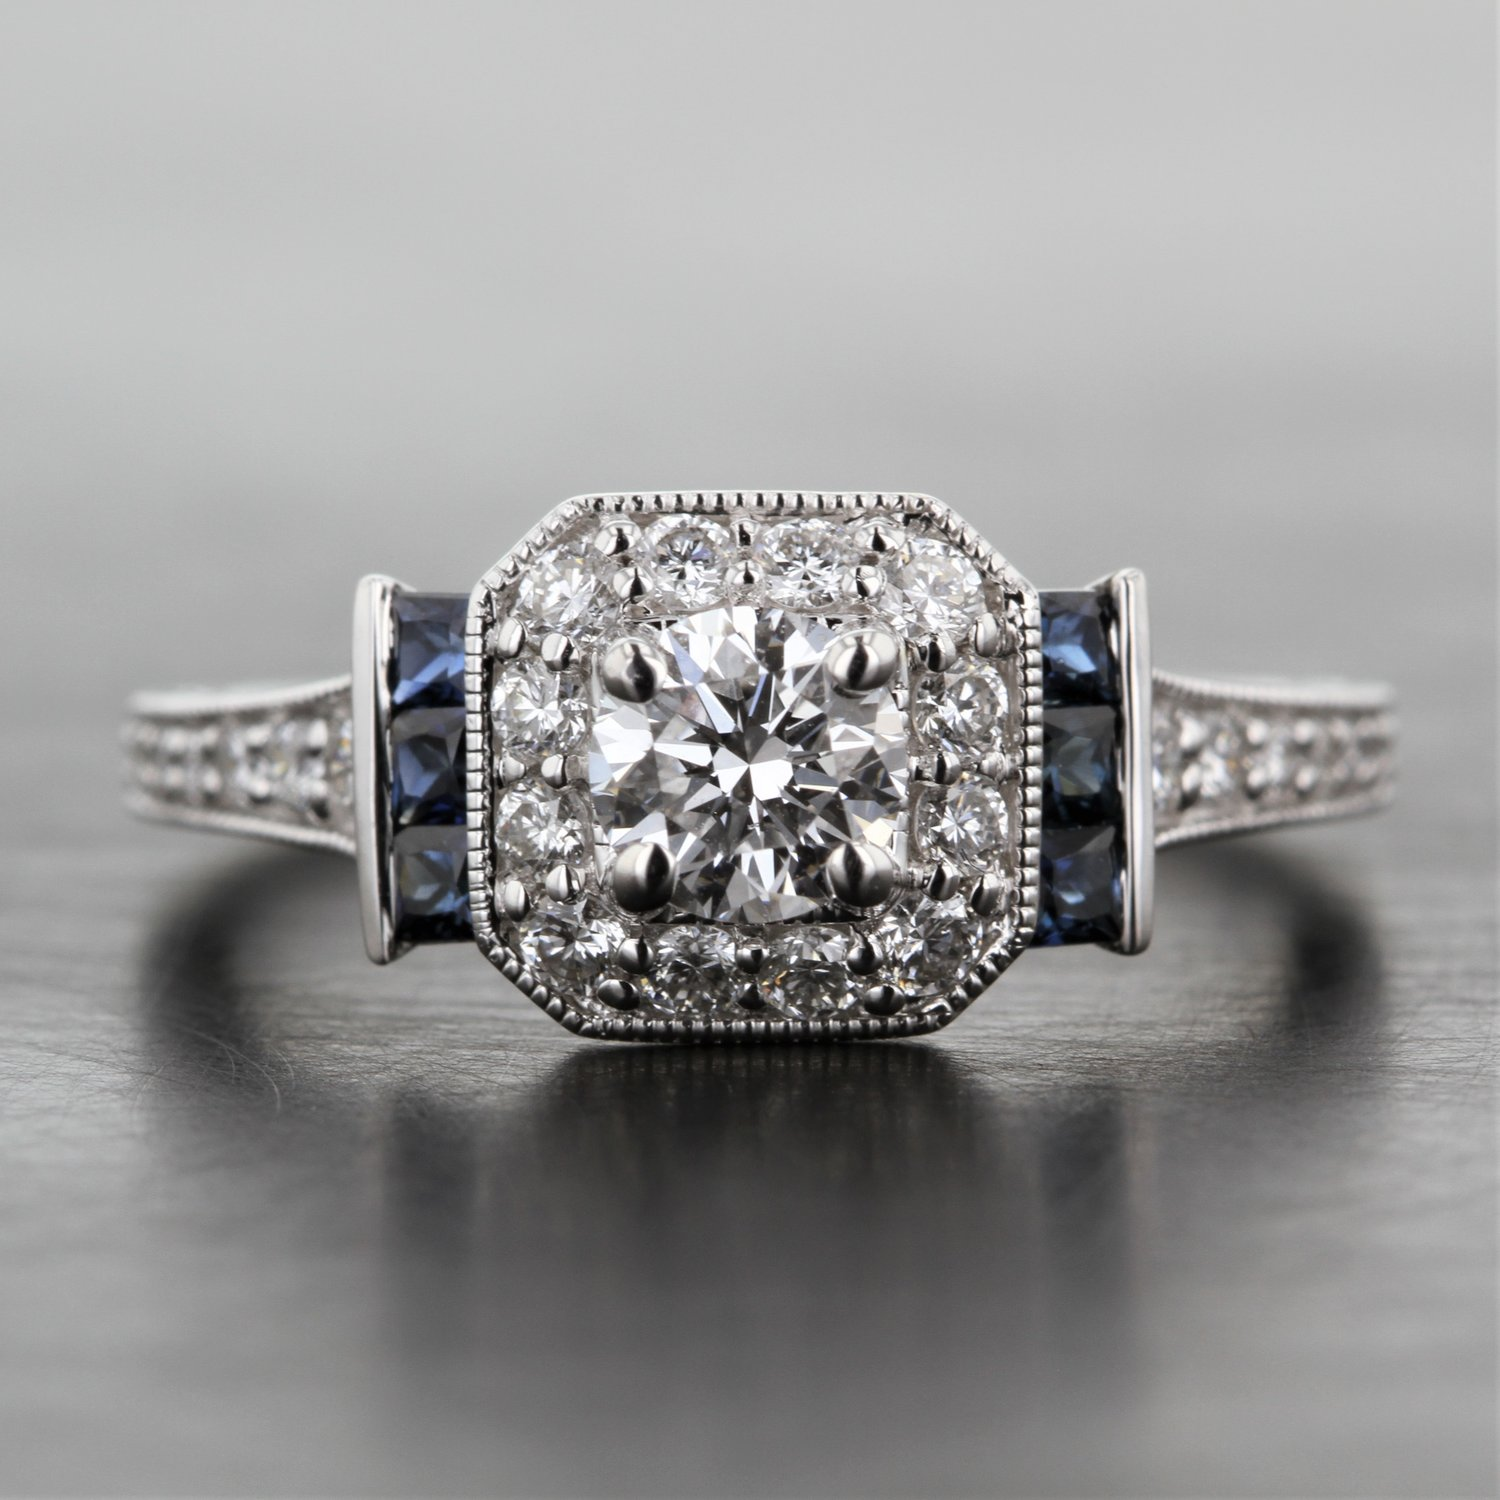 b9e6fcb924b Deco Style Diamond Halo Engagement Ring with Sapphire Detail — Kizer  Cummings Jewelers